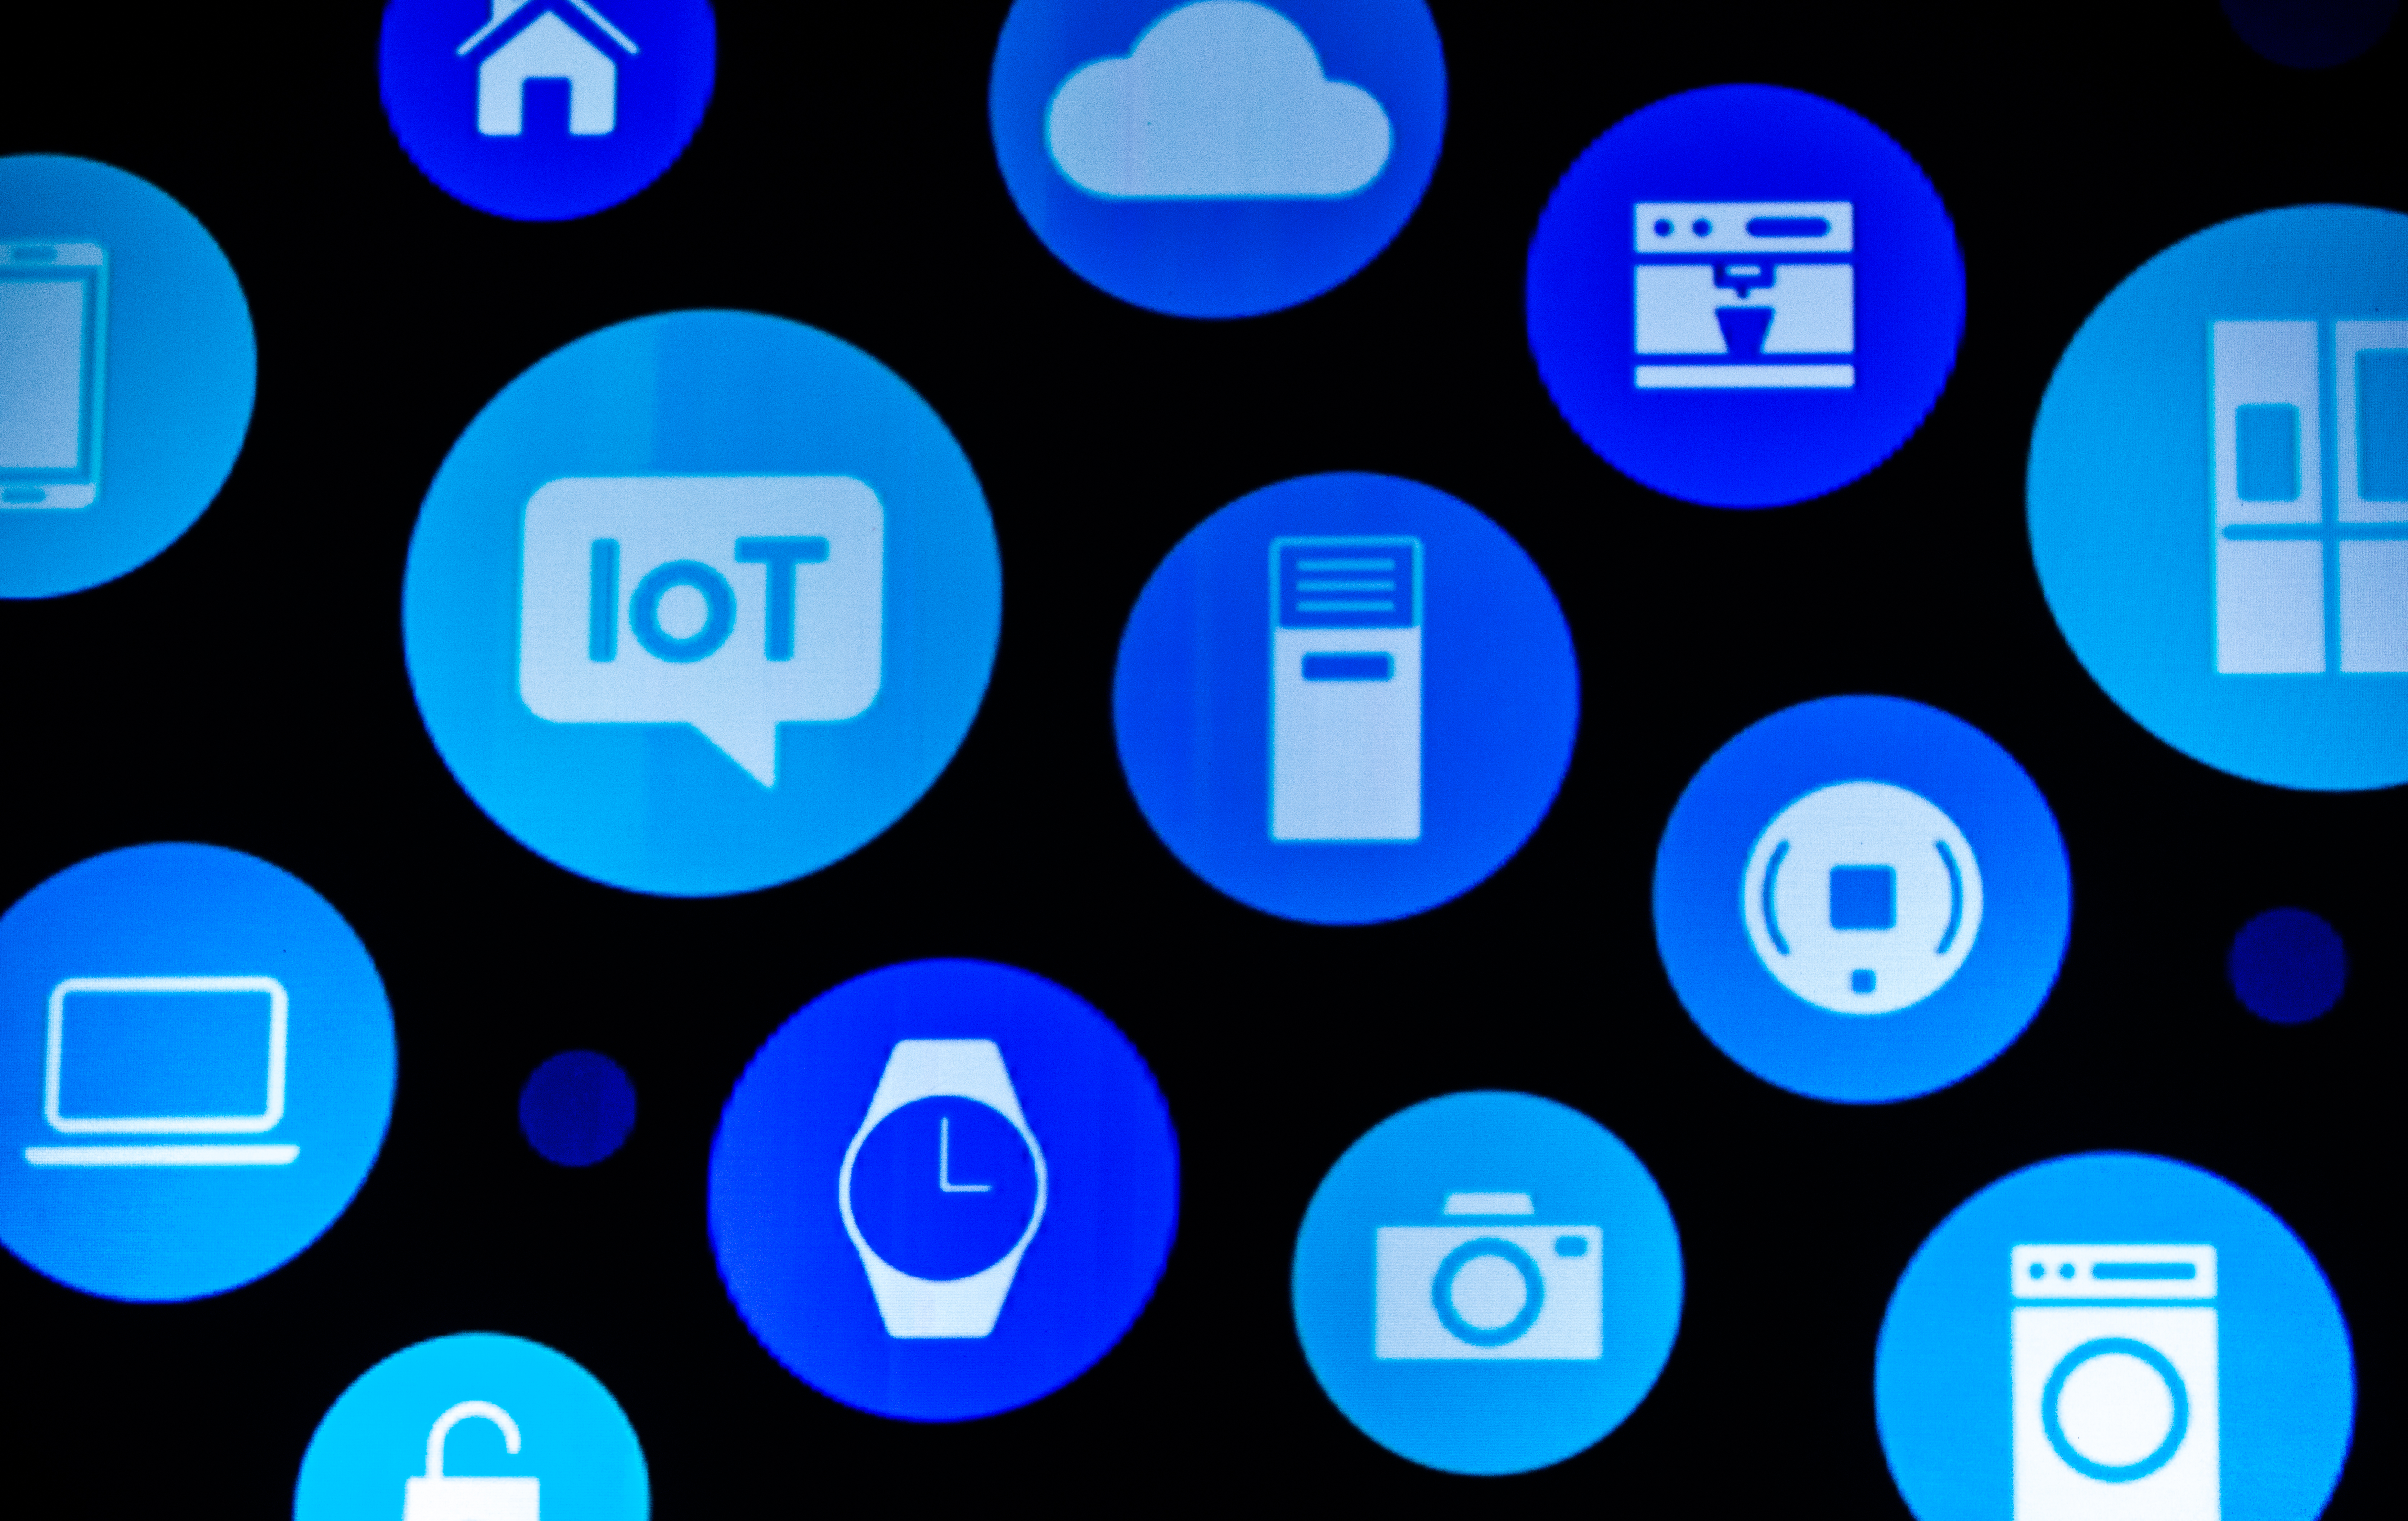 internet-of-things-iot-devices-1705.jpg